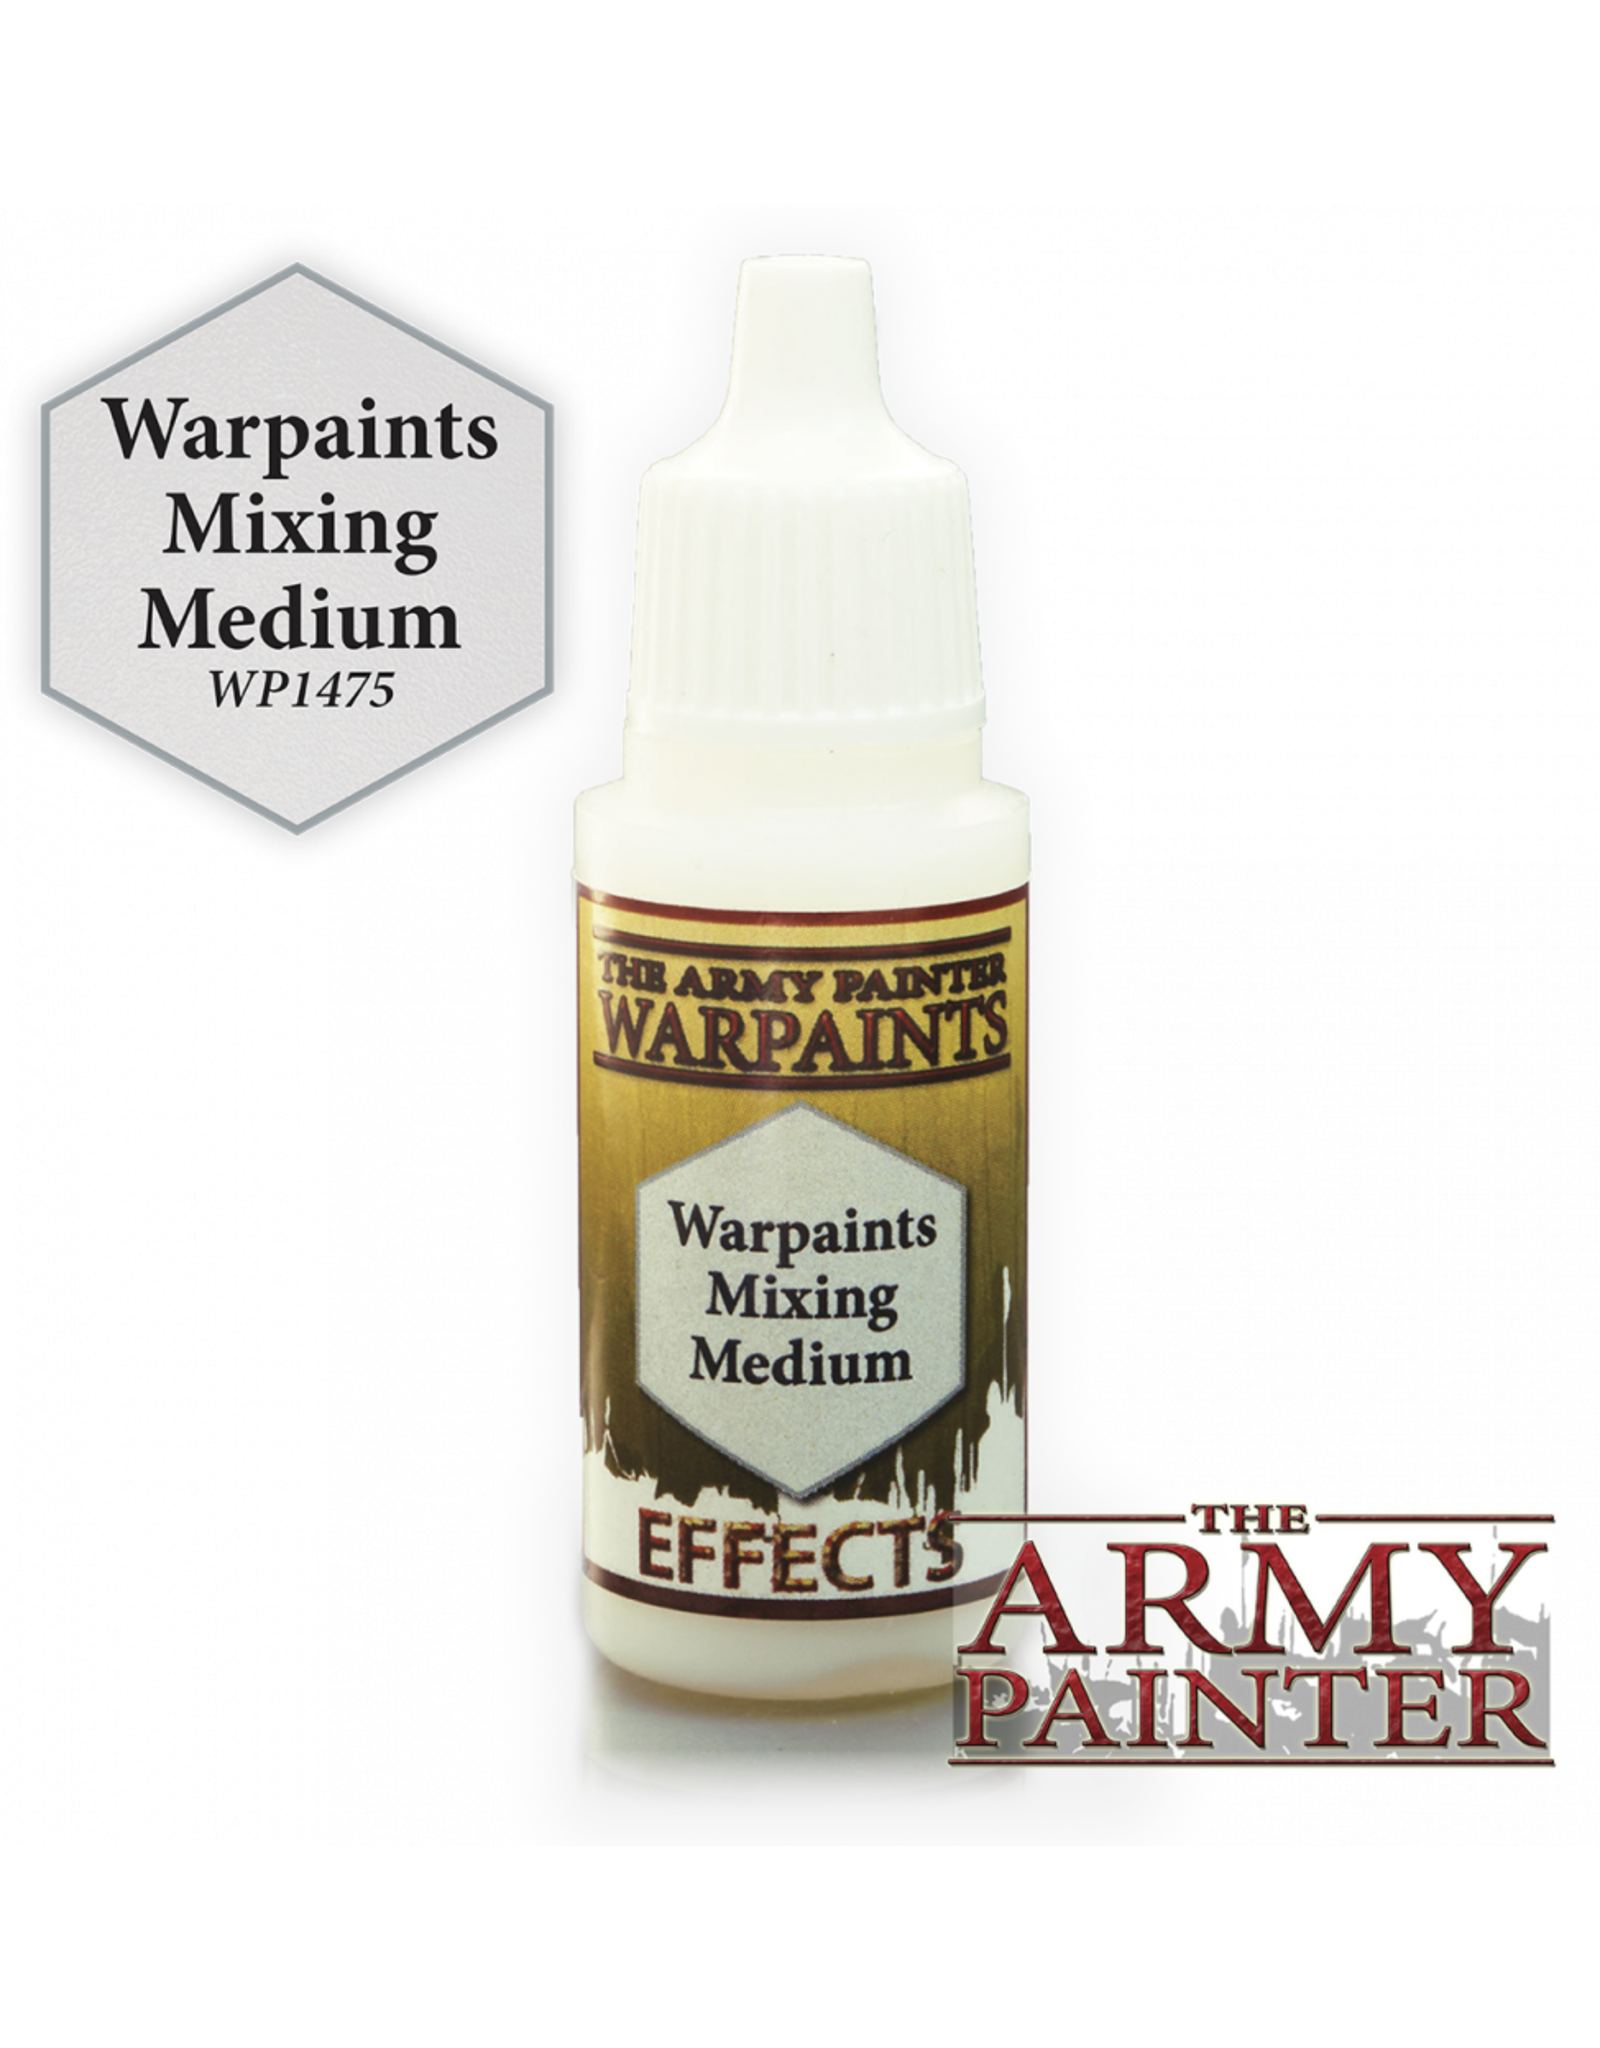 THE ARMY PAINTER ARMY PAINTER WARPAINTS EFFECTS MIXING MEDIUM